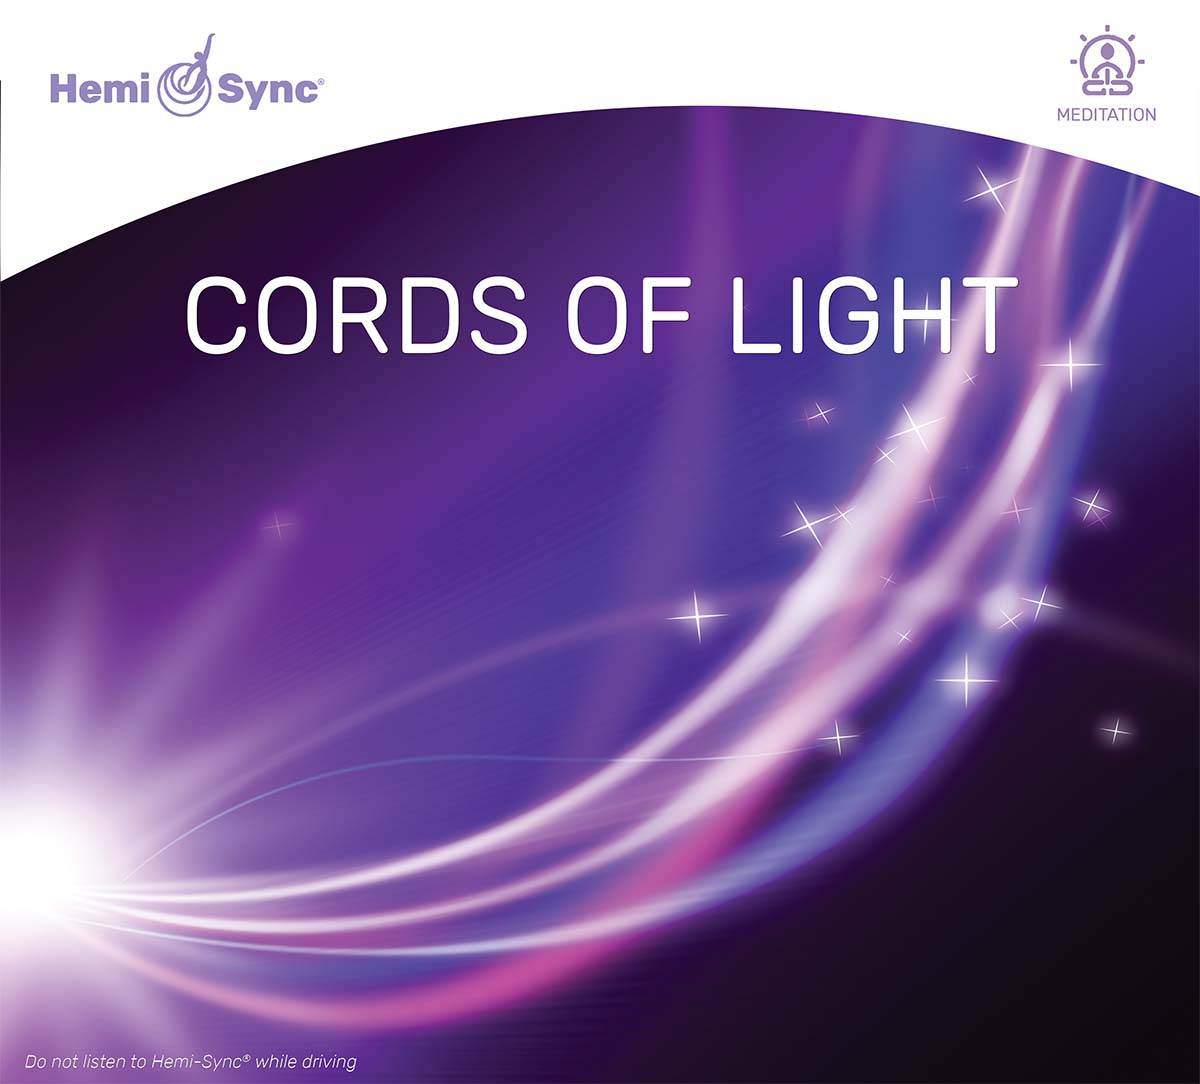 Cords of Light